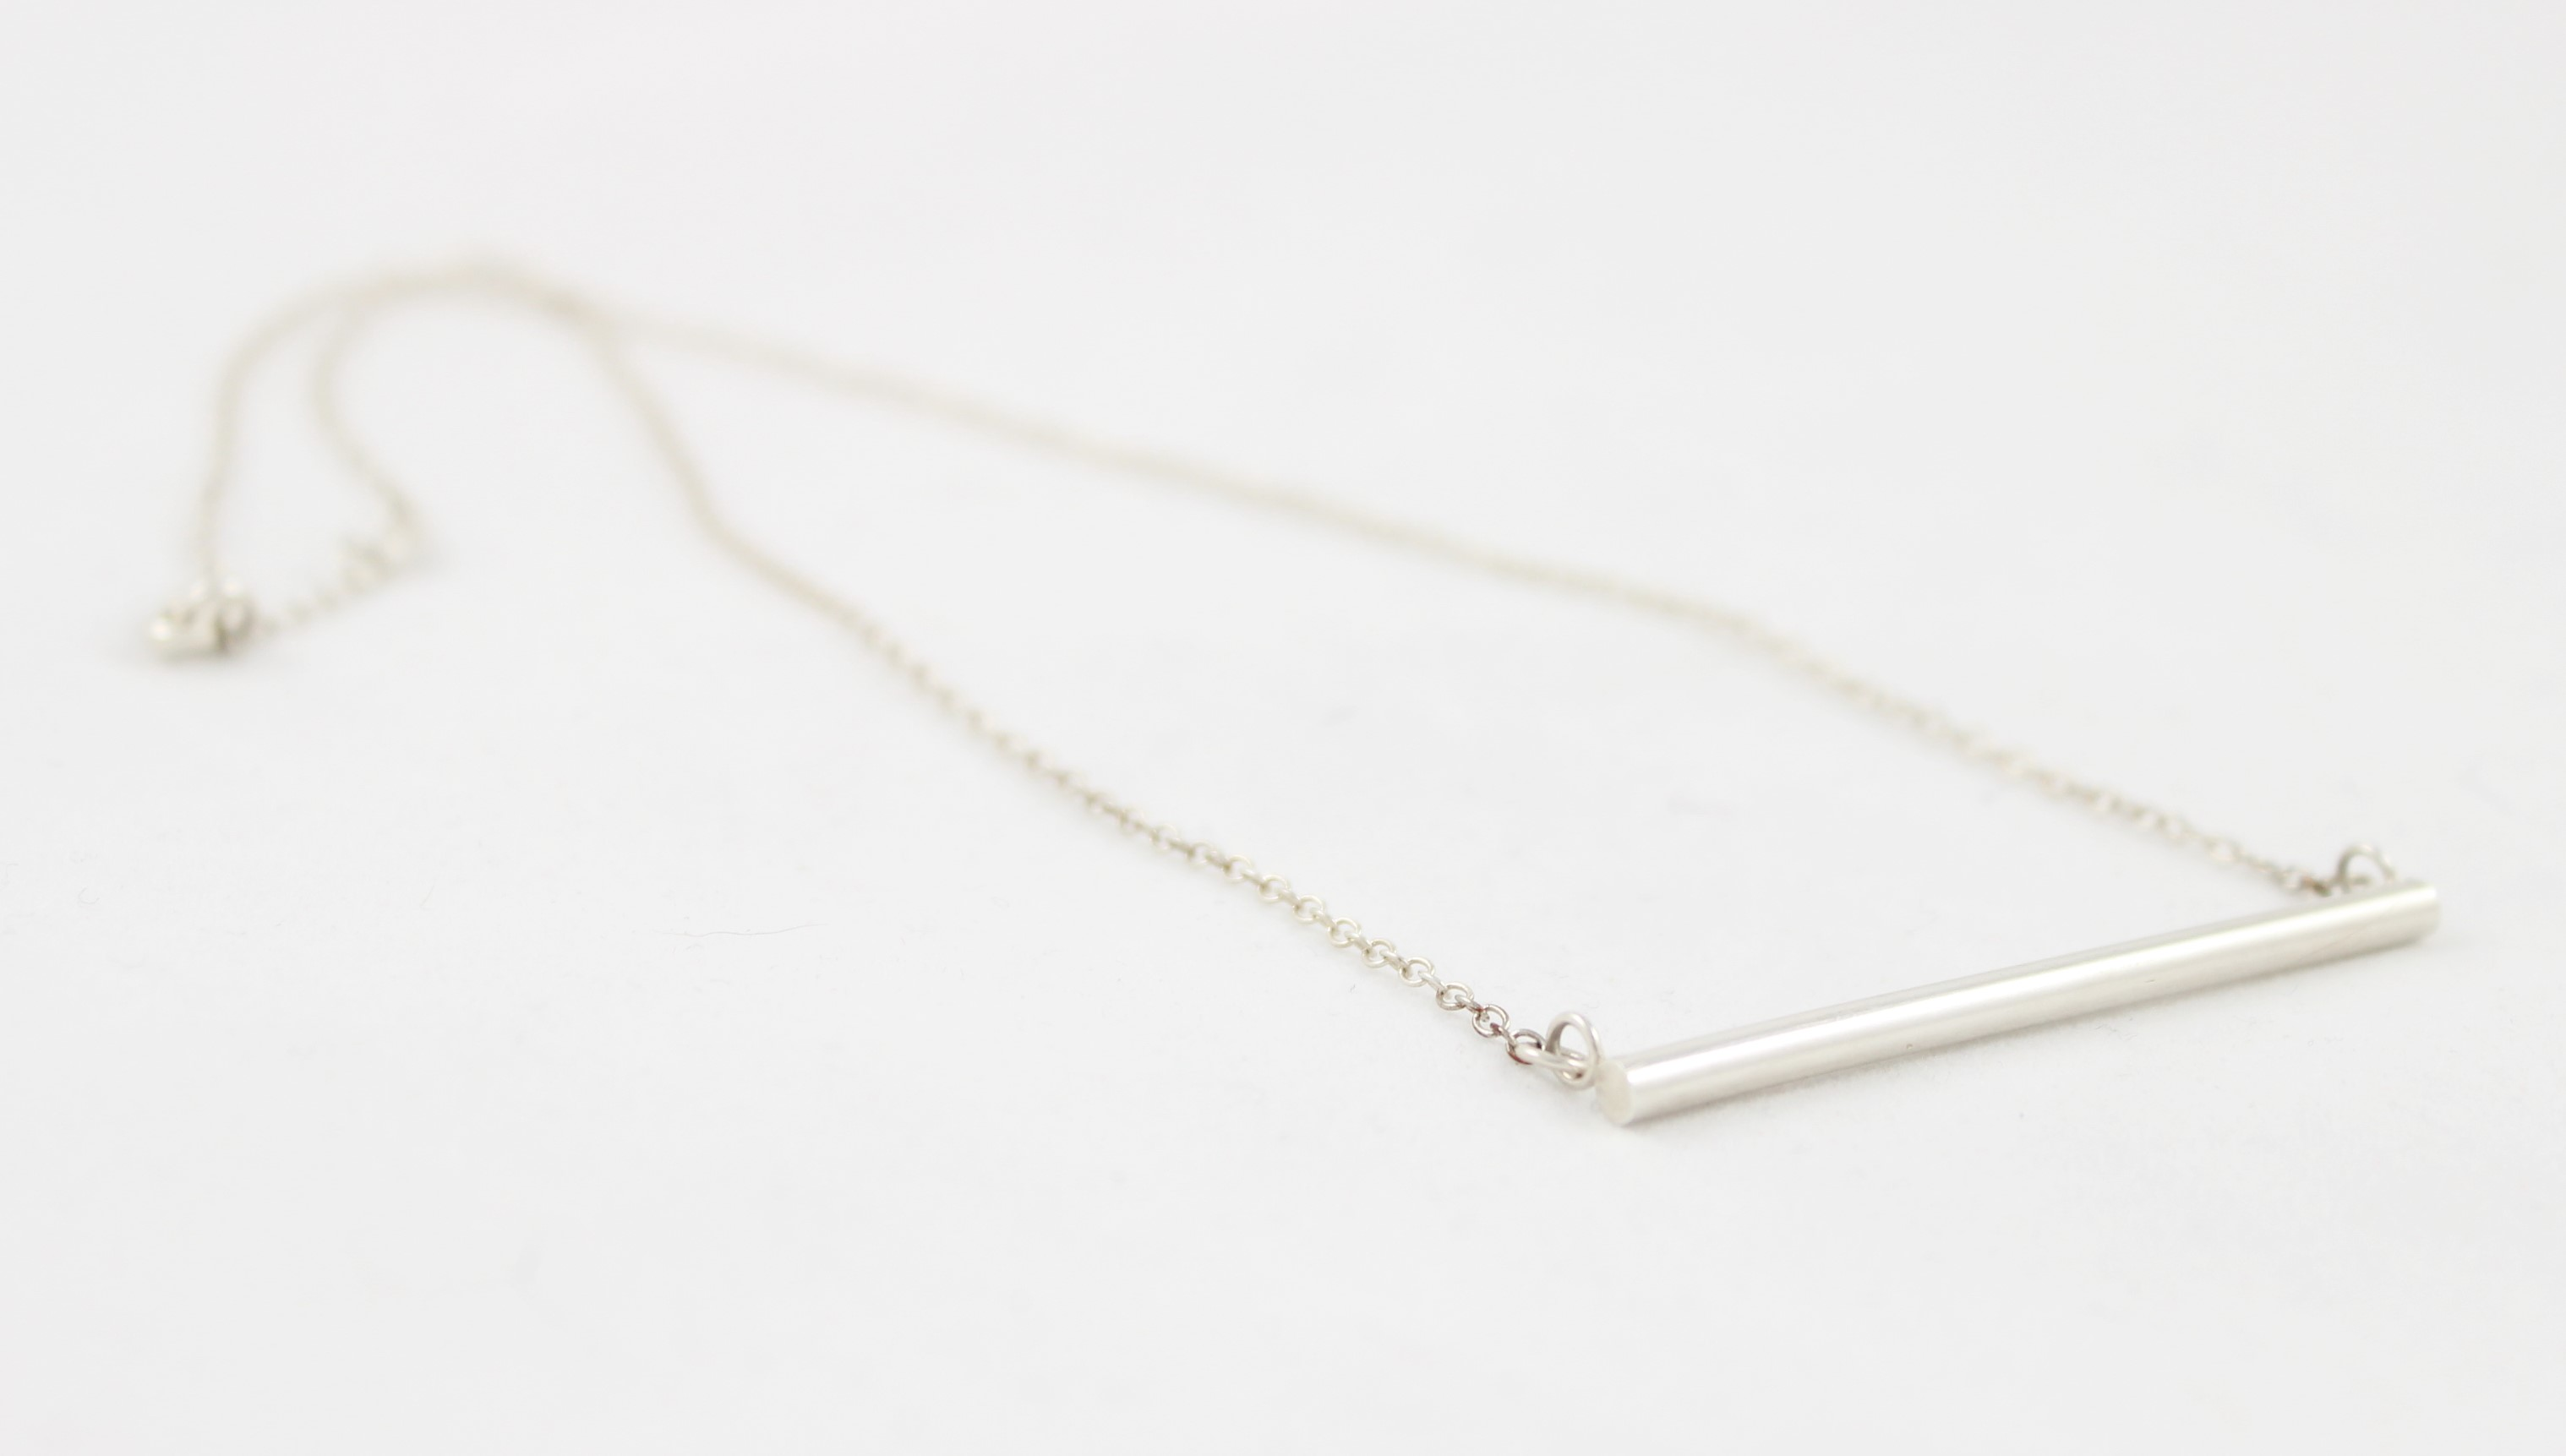 store silver prairie wild necklace chain hammered sterling handmade pendant by jewelry